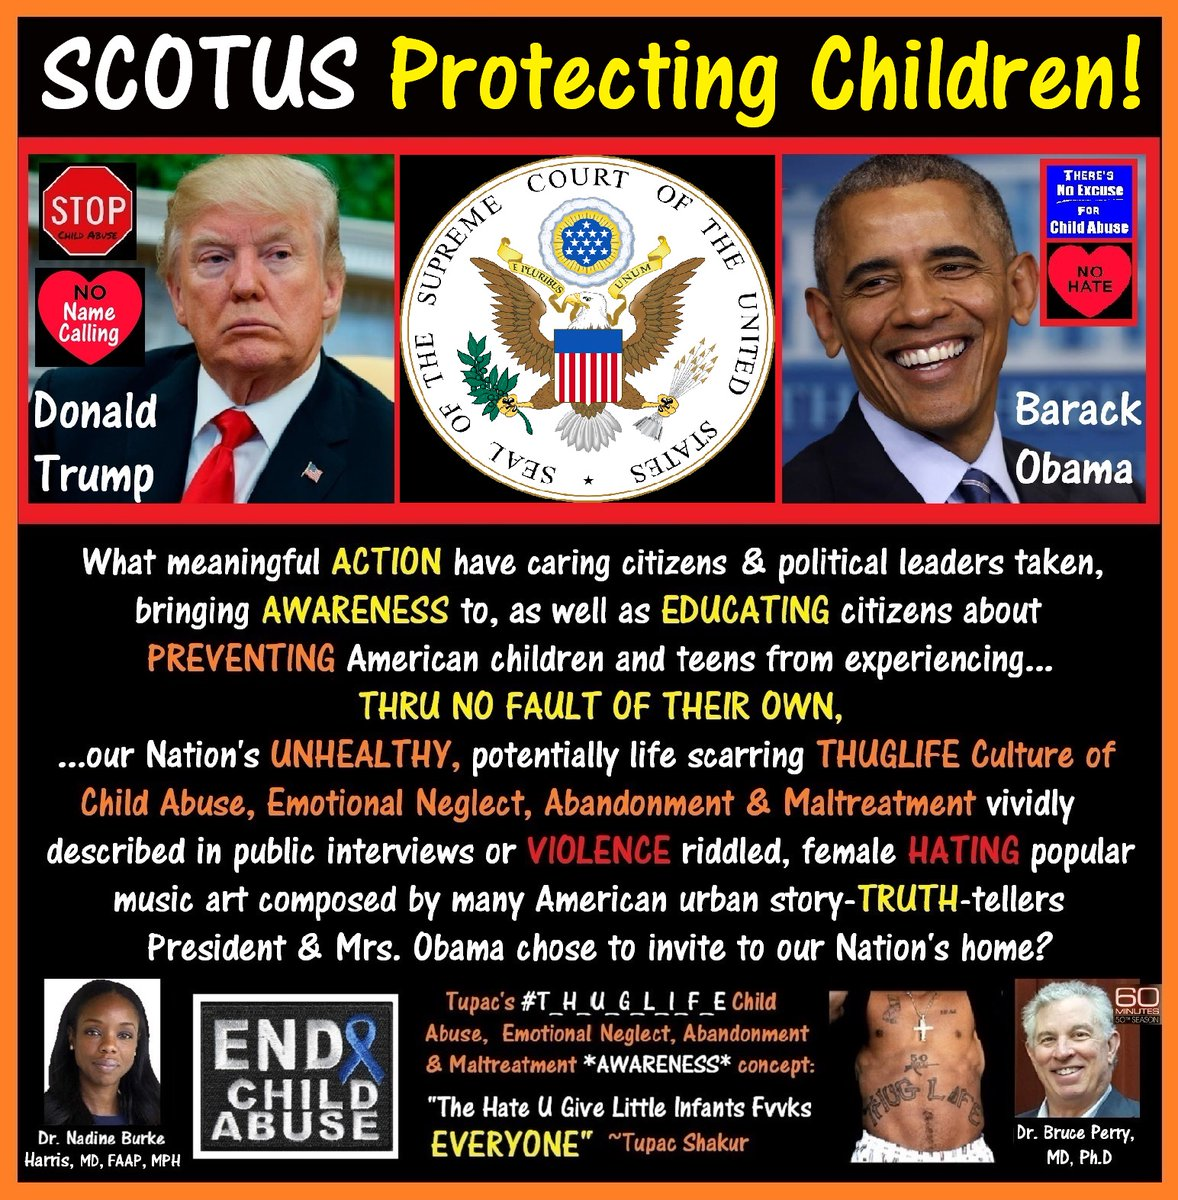 @Mr_Berman @ZoeTillman Is #SCOTUS peeved at Donald Trump for ignoring our Nation's Child Care Public Health CRISIS vividly described in Gun Violence riddled, FEMALE DENIGRATING music composed by many Pres & Mrs Obama WH guests!    #ReportSuspectedChildAbuse  ☮️♥️🇺🇸 EndHate2021